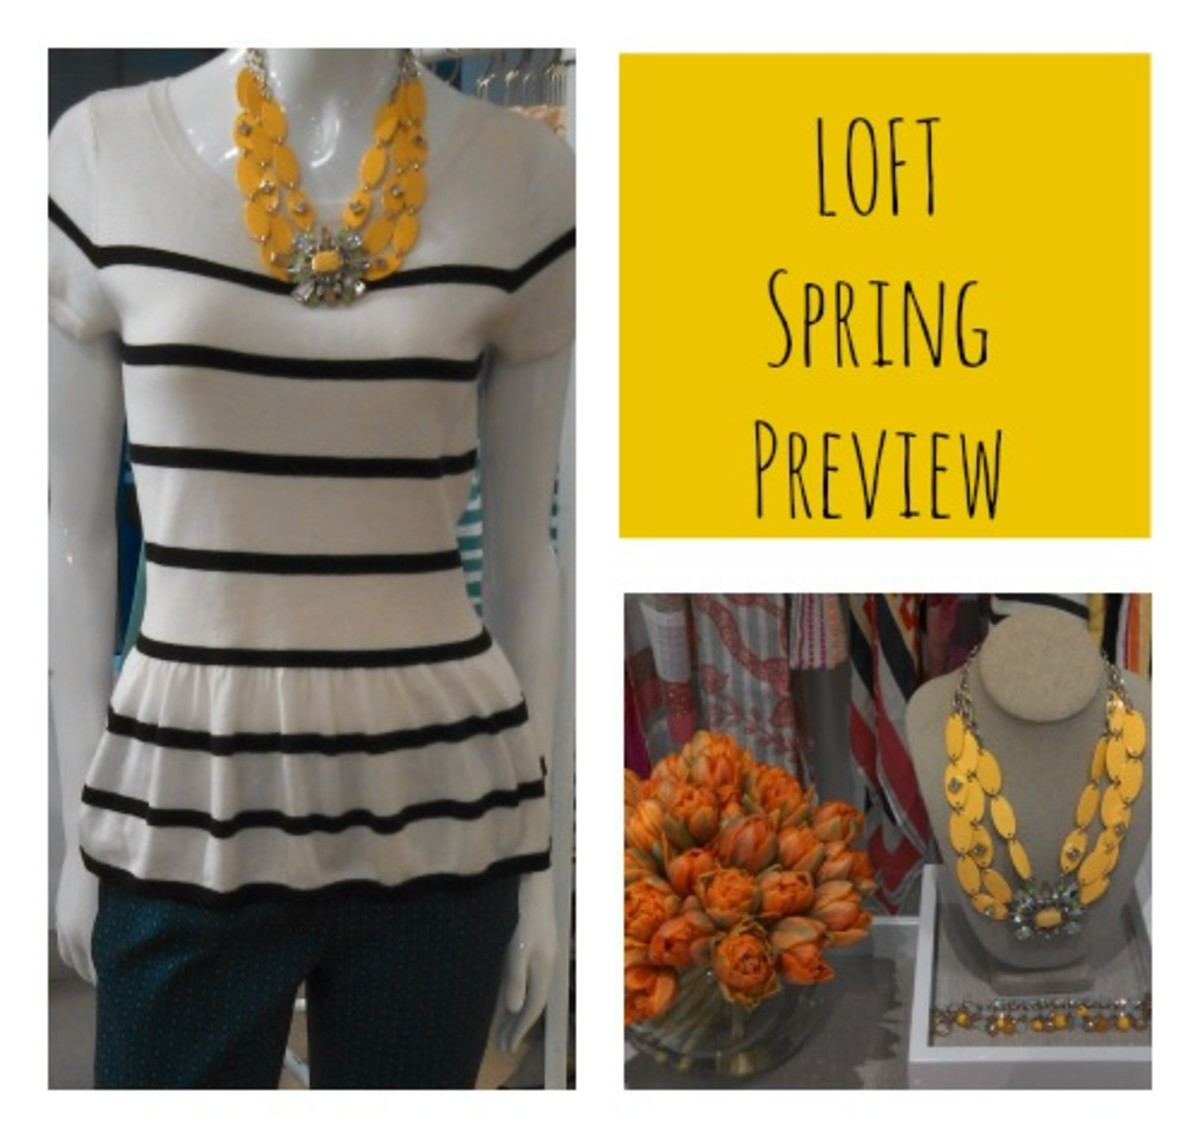 LOFT spring preview